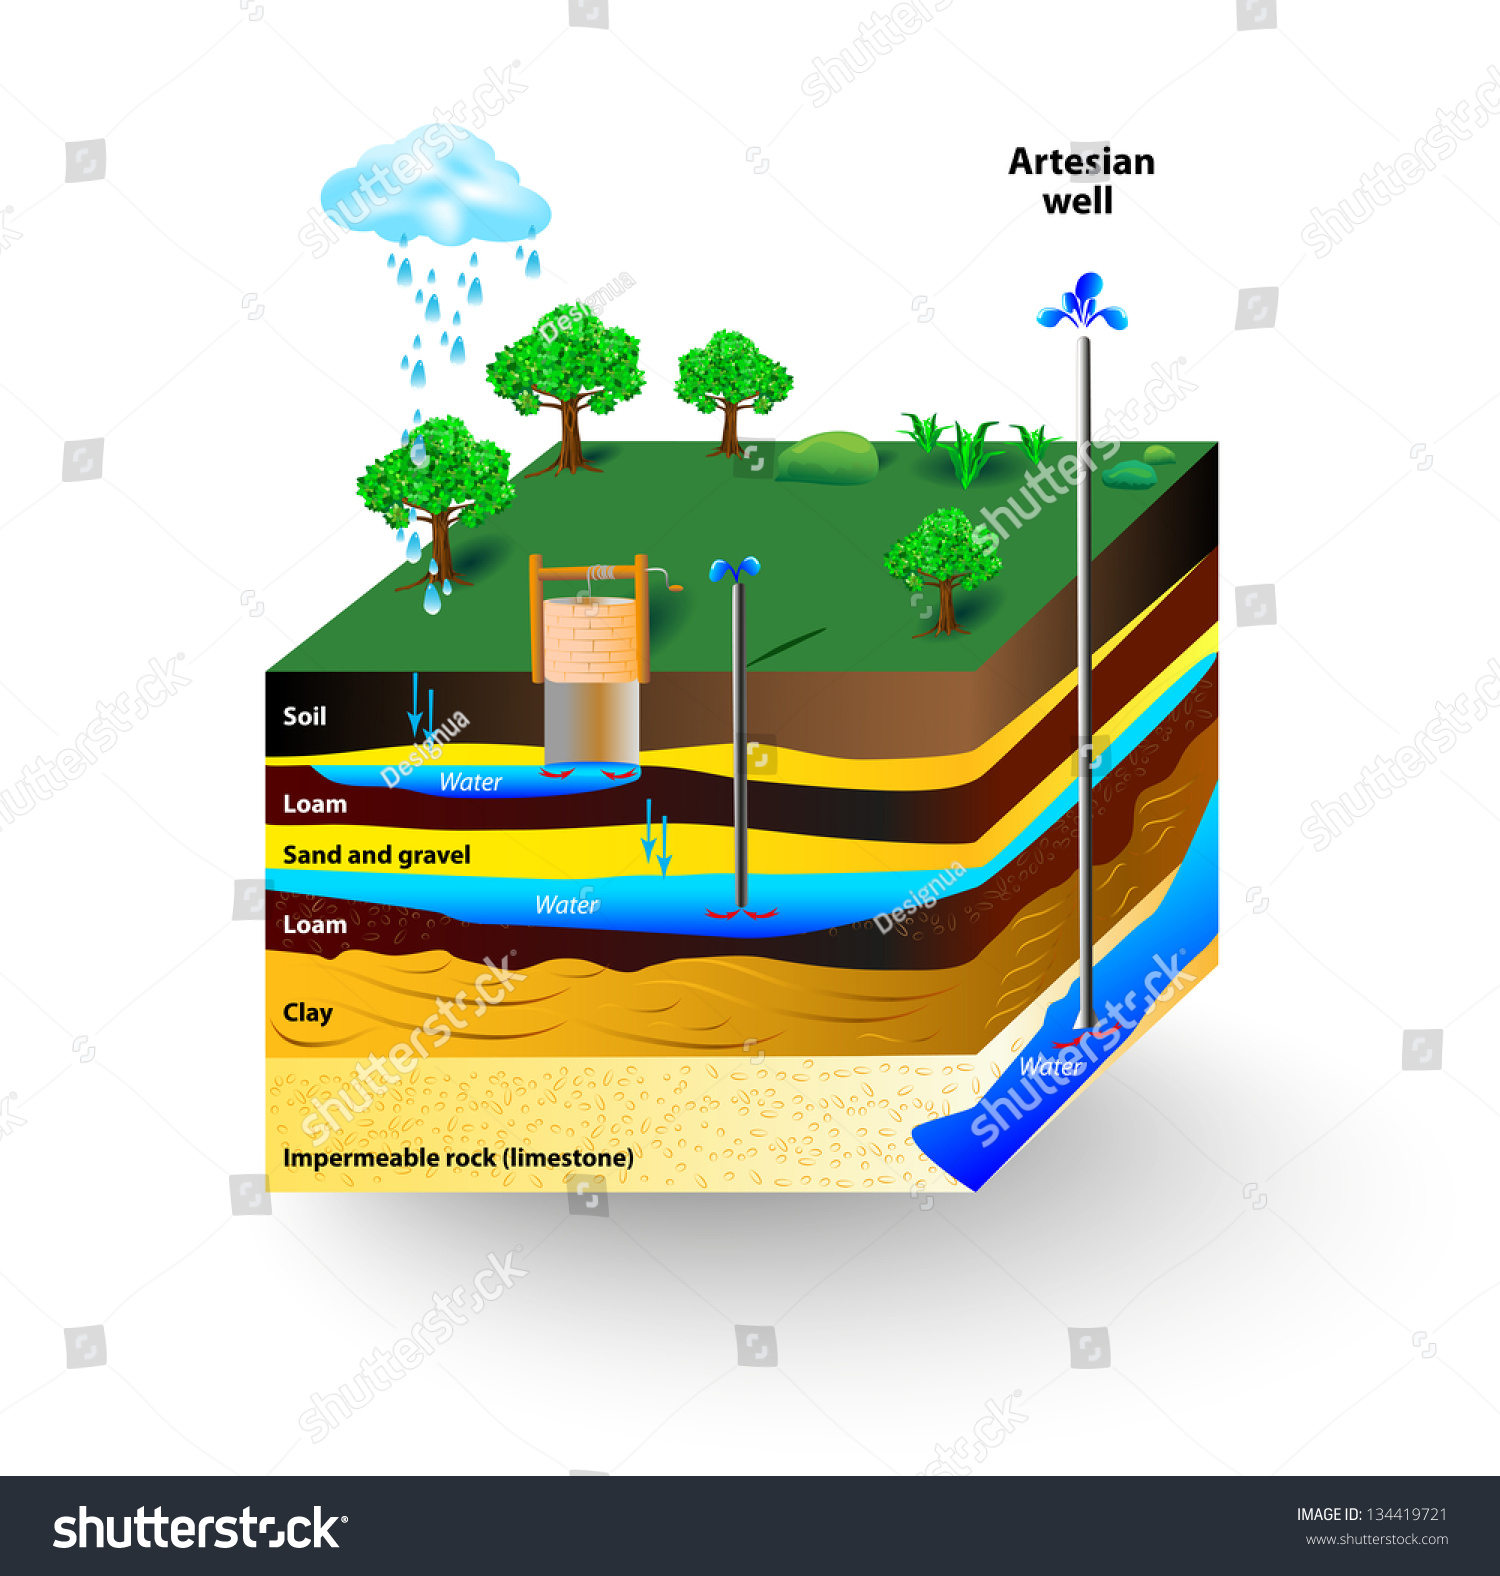 artesian water groundwater schematic artesian well stock